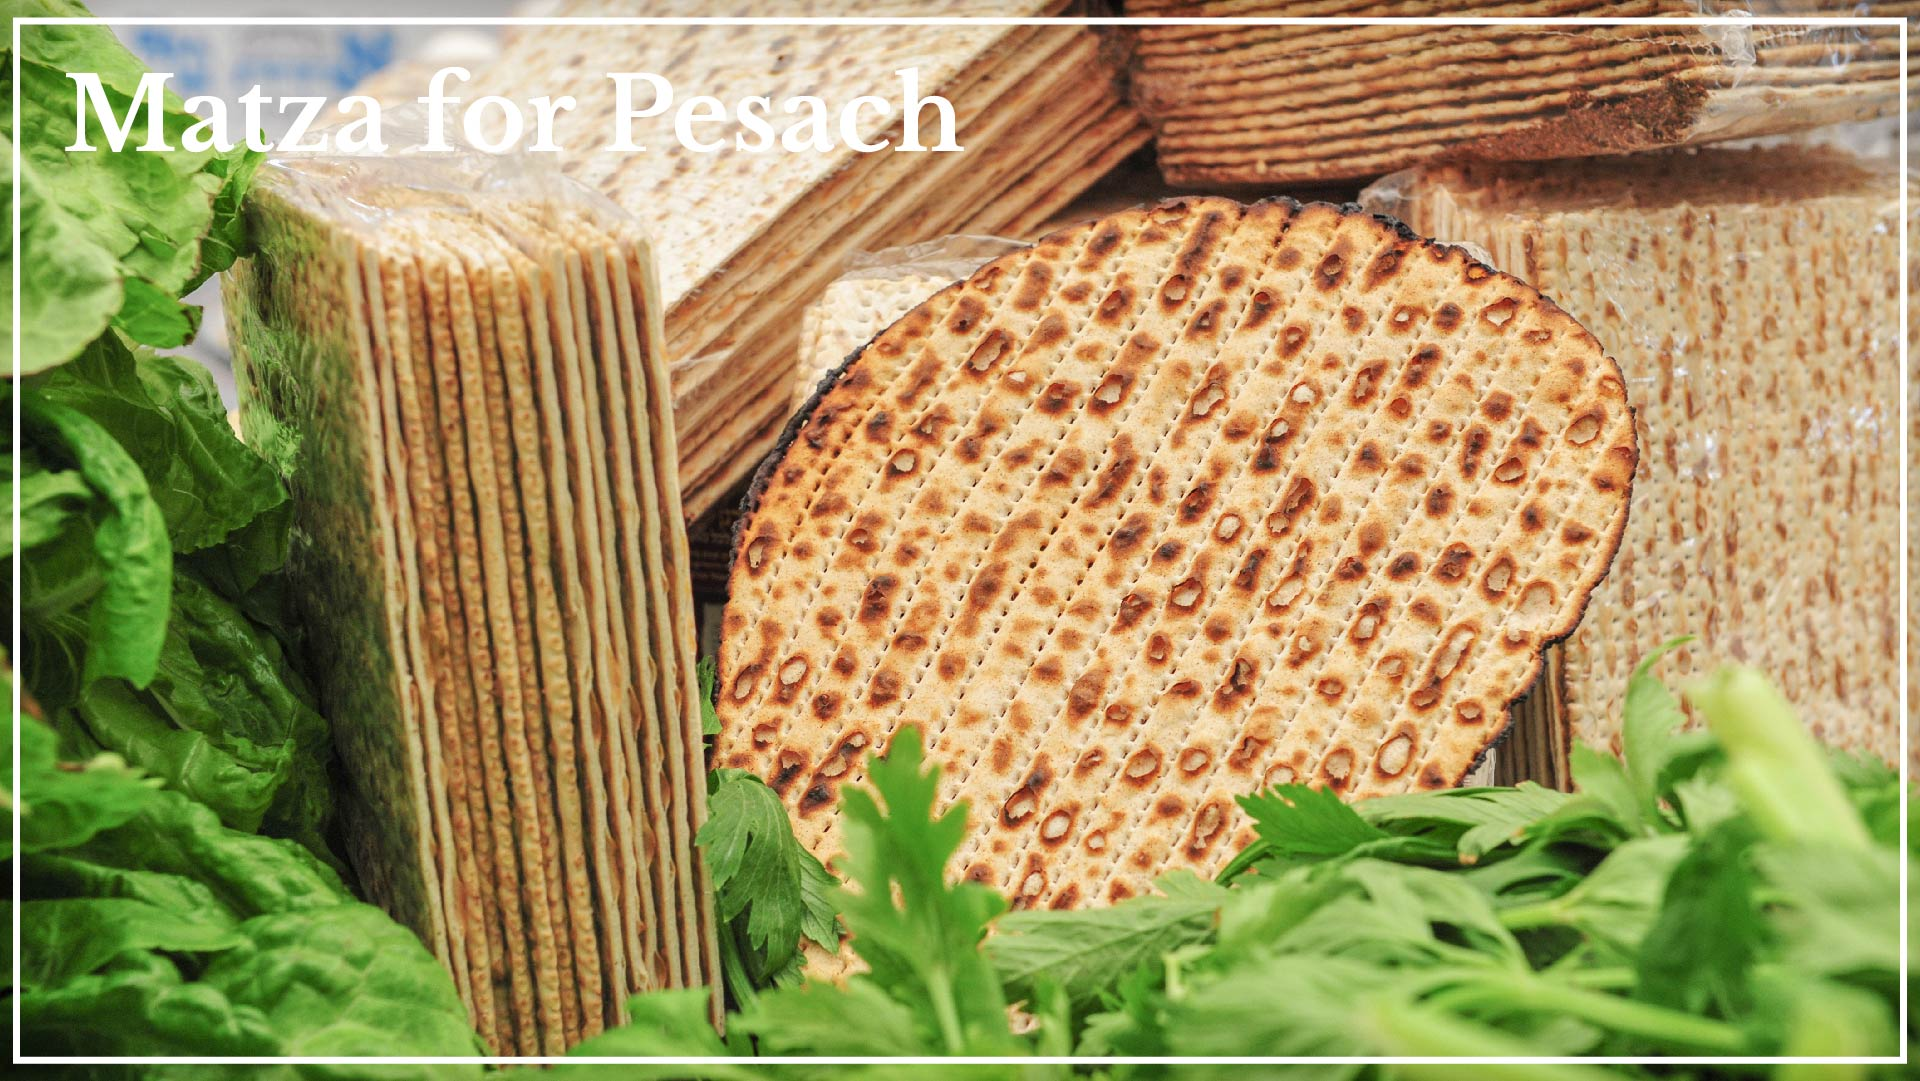 Matza for Pesach - official unleavened bread for Pesach